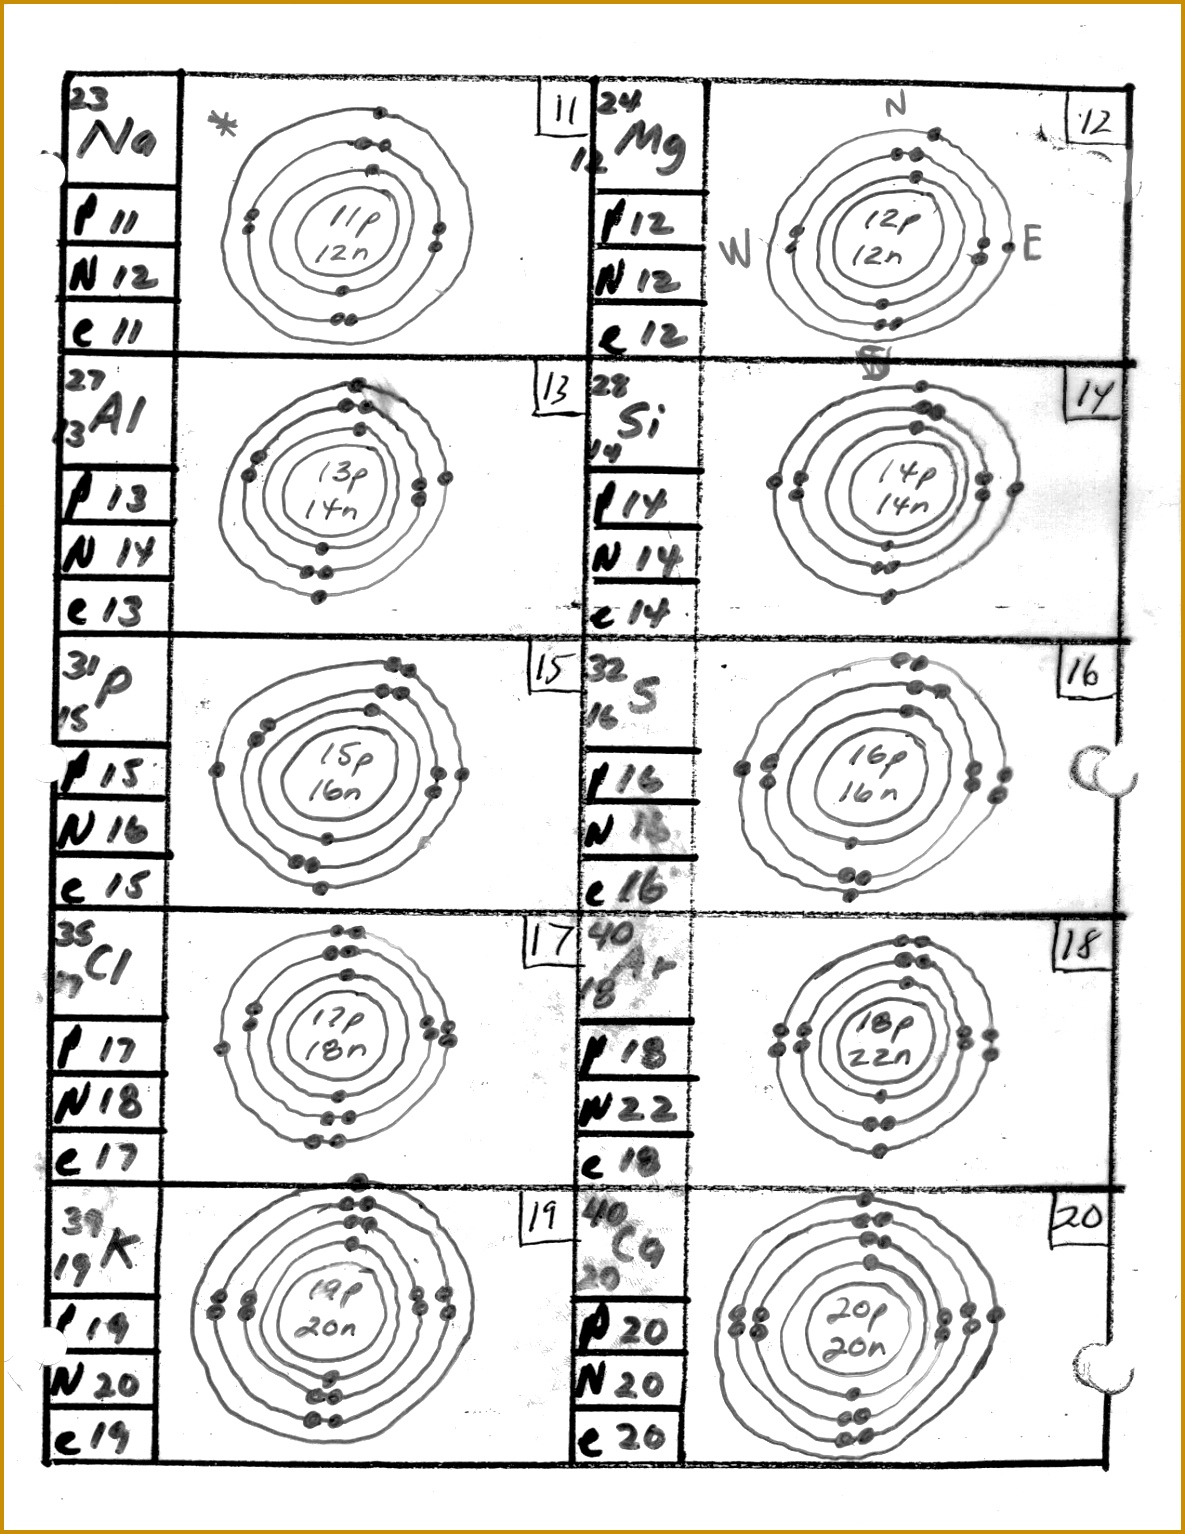 Bohr Rutherford diagrams 1 10 11 20 15341185